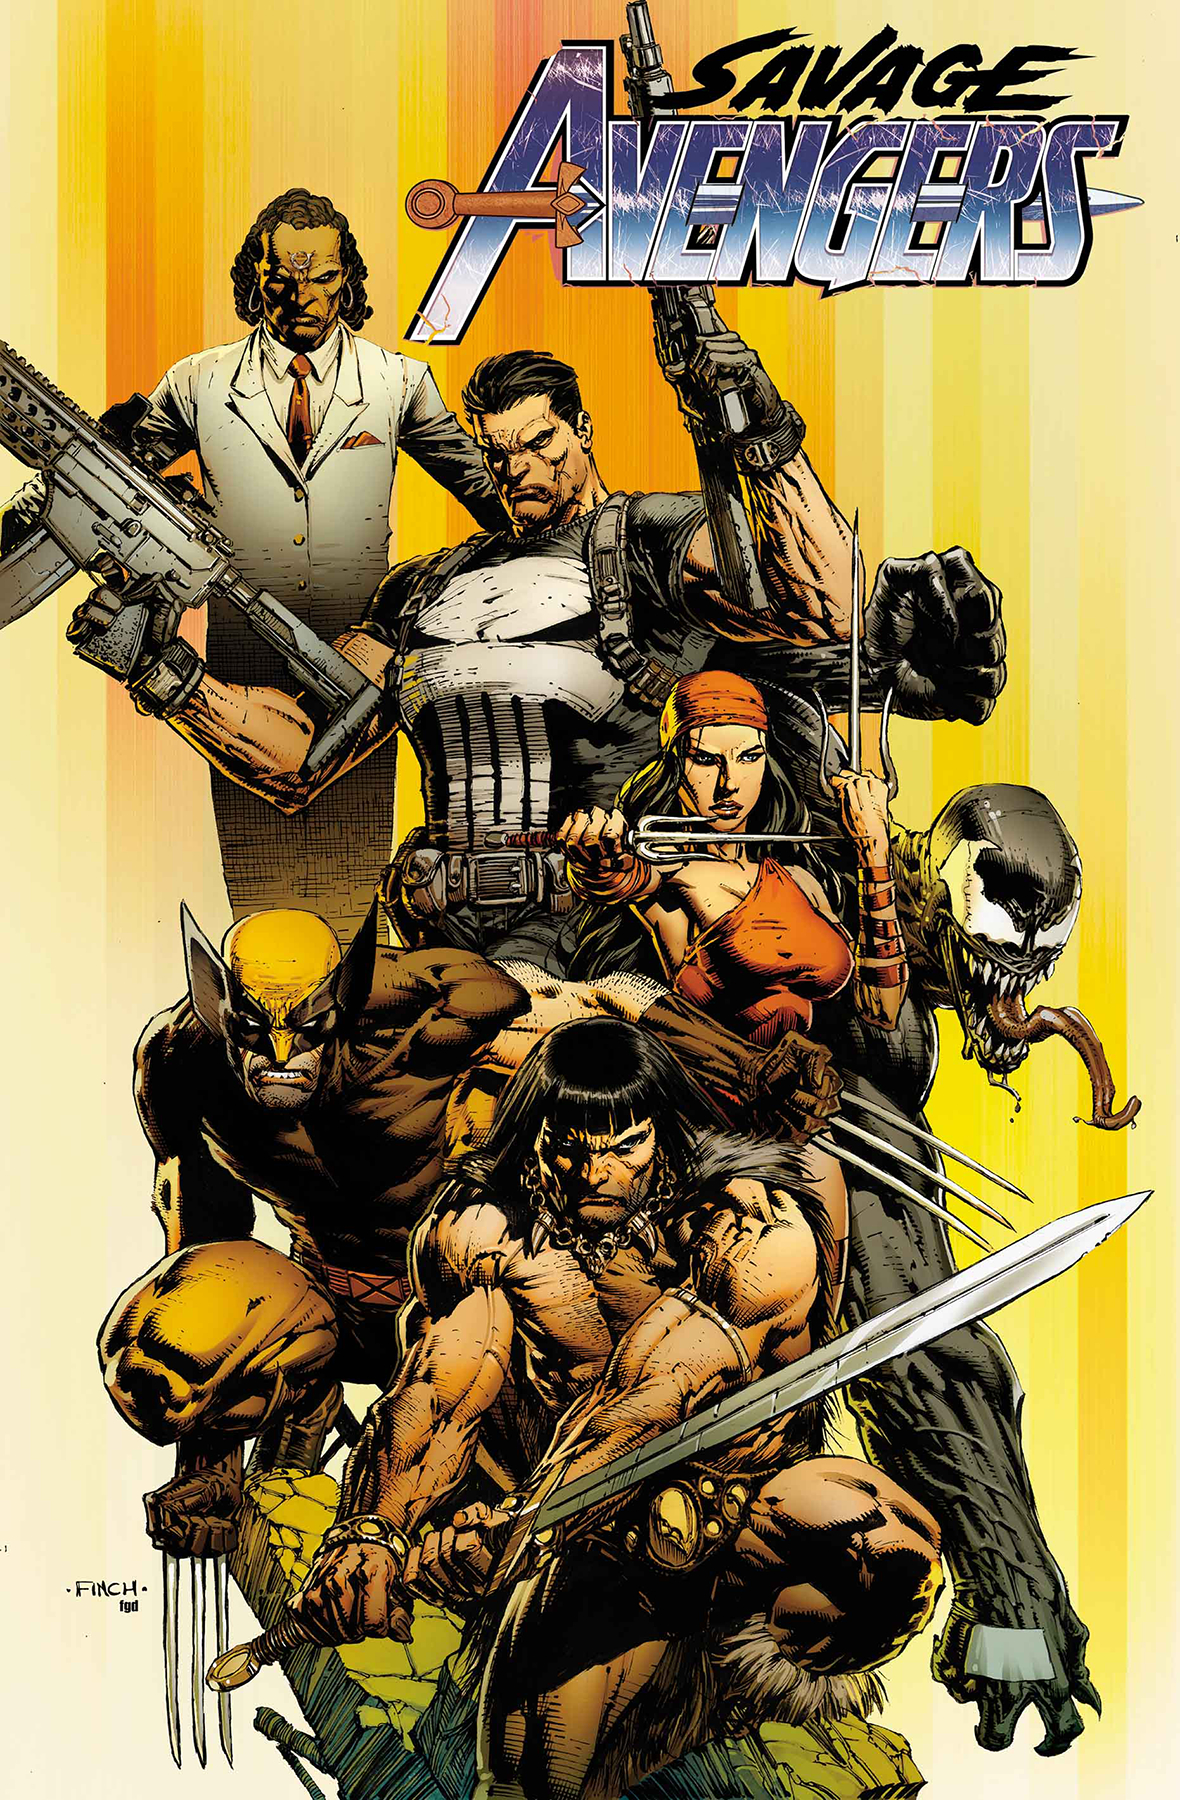 Kim Jacinto Replaces Mike Deodato on Savage Avengers, Then Patch Zircher Comes On Board